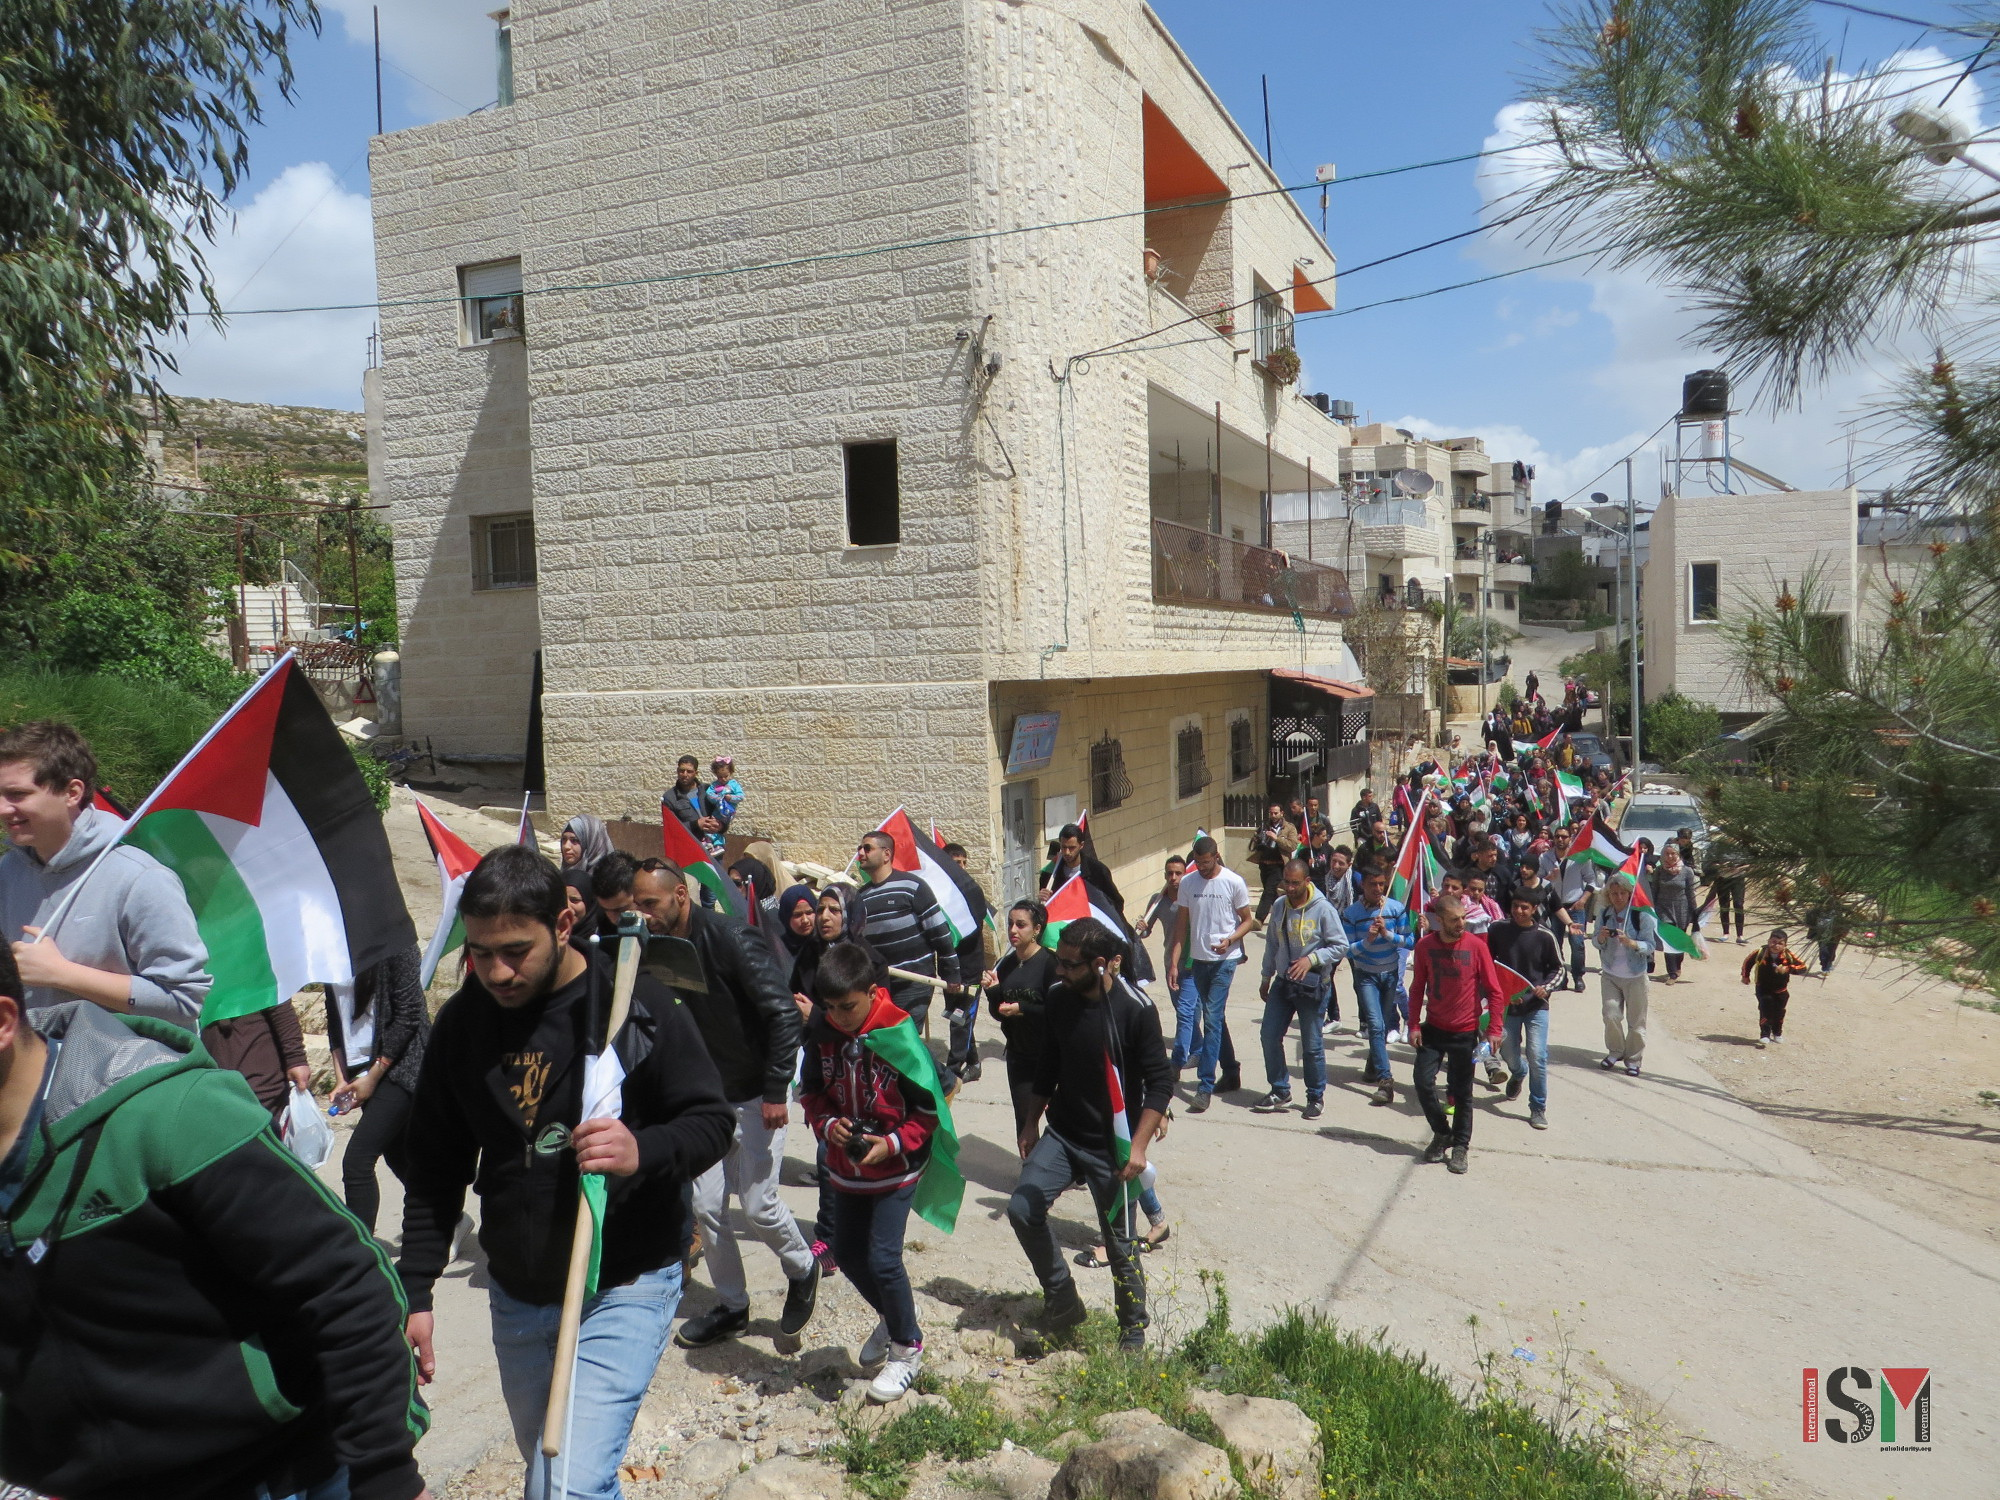 Land Day protest marching in the streets of Wadi Fukin